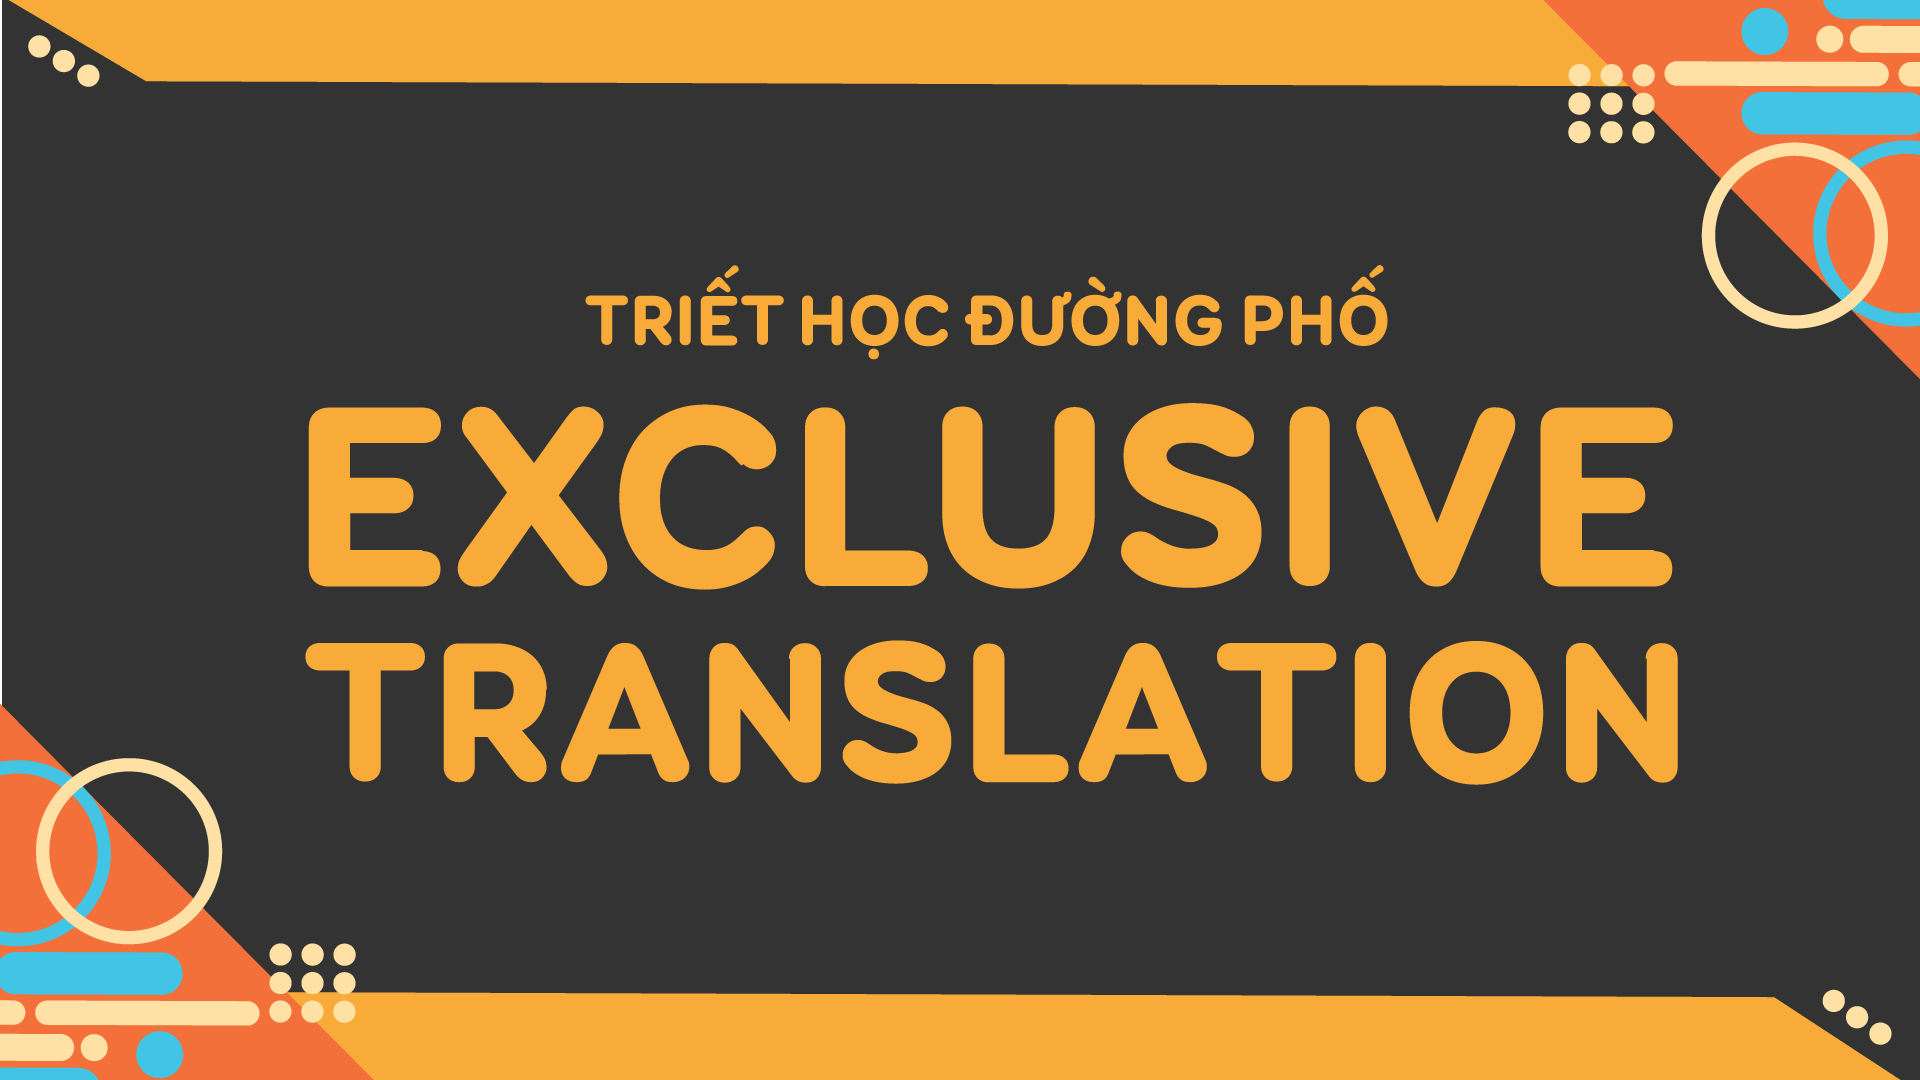 thdp translation 4